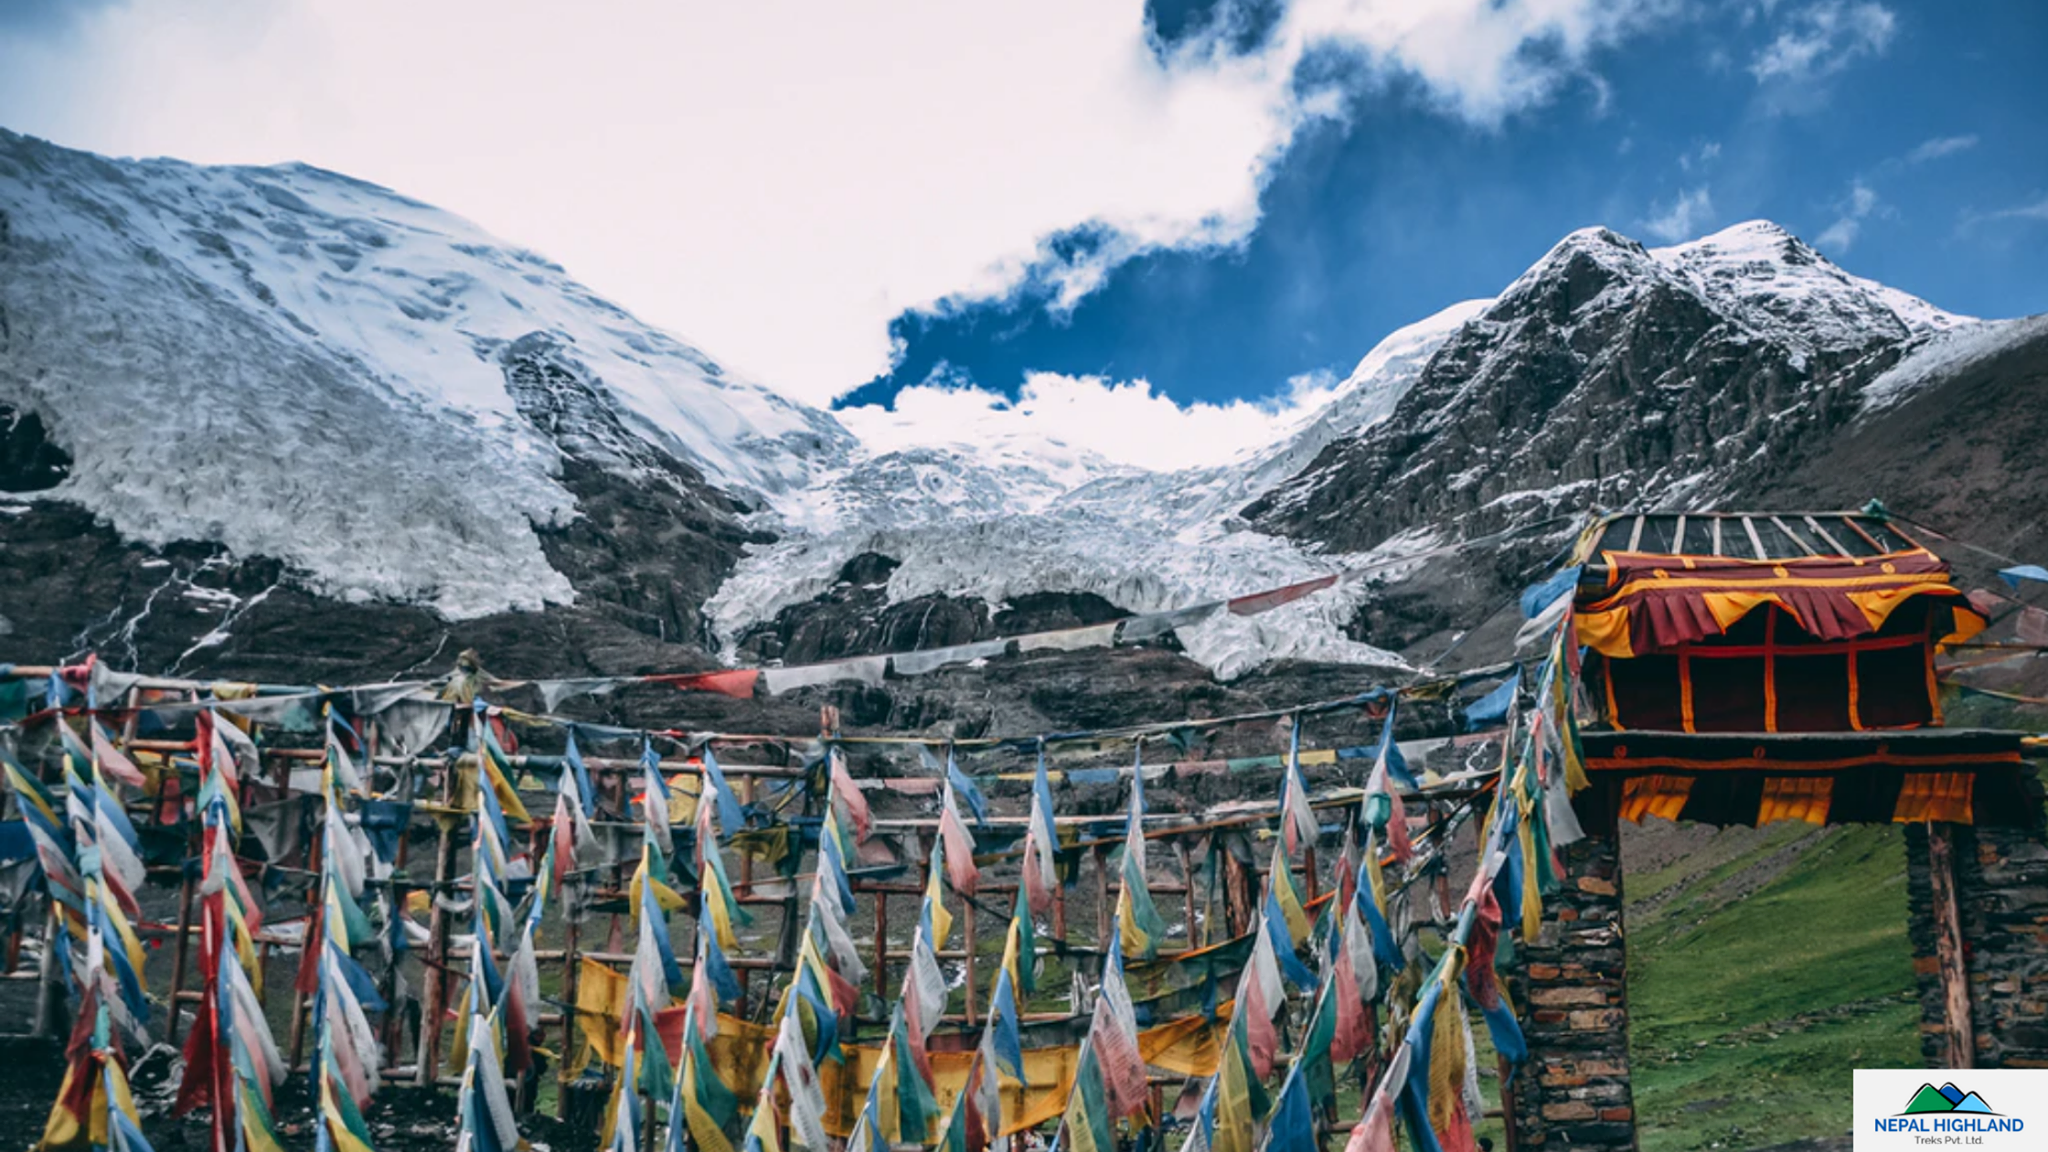 Highlights of Nepal Tibet Bhutan Tour